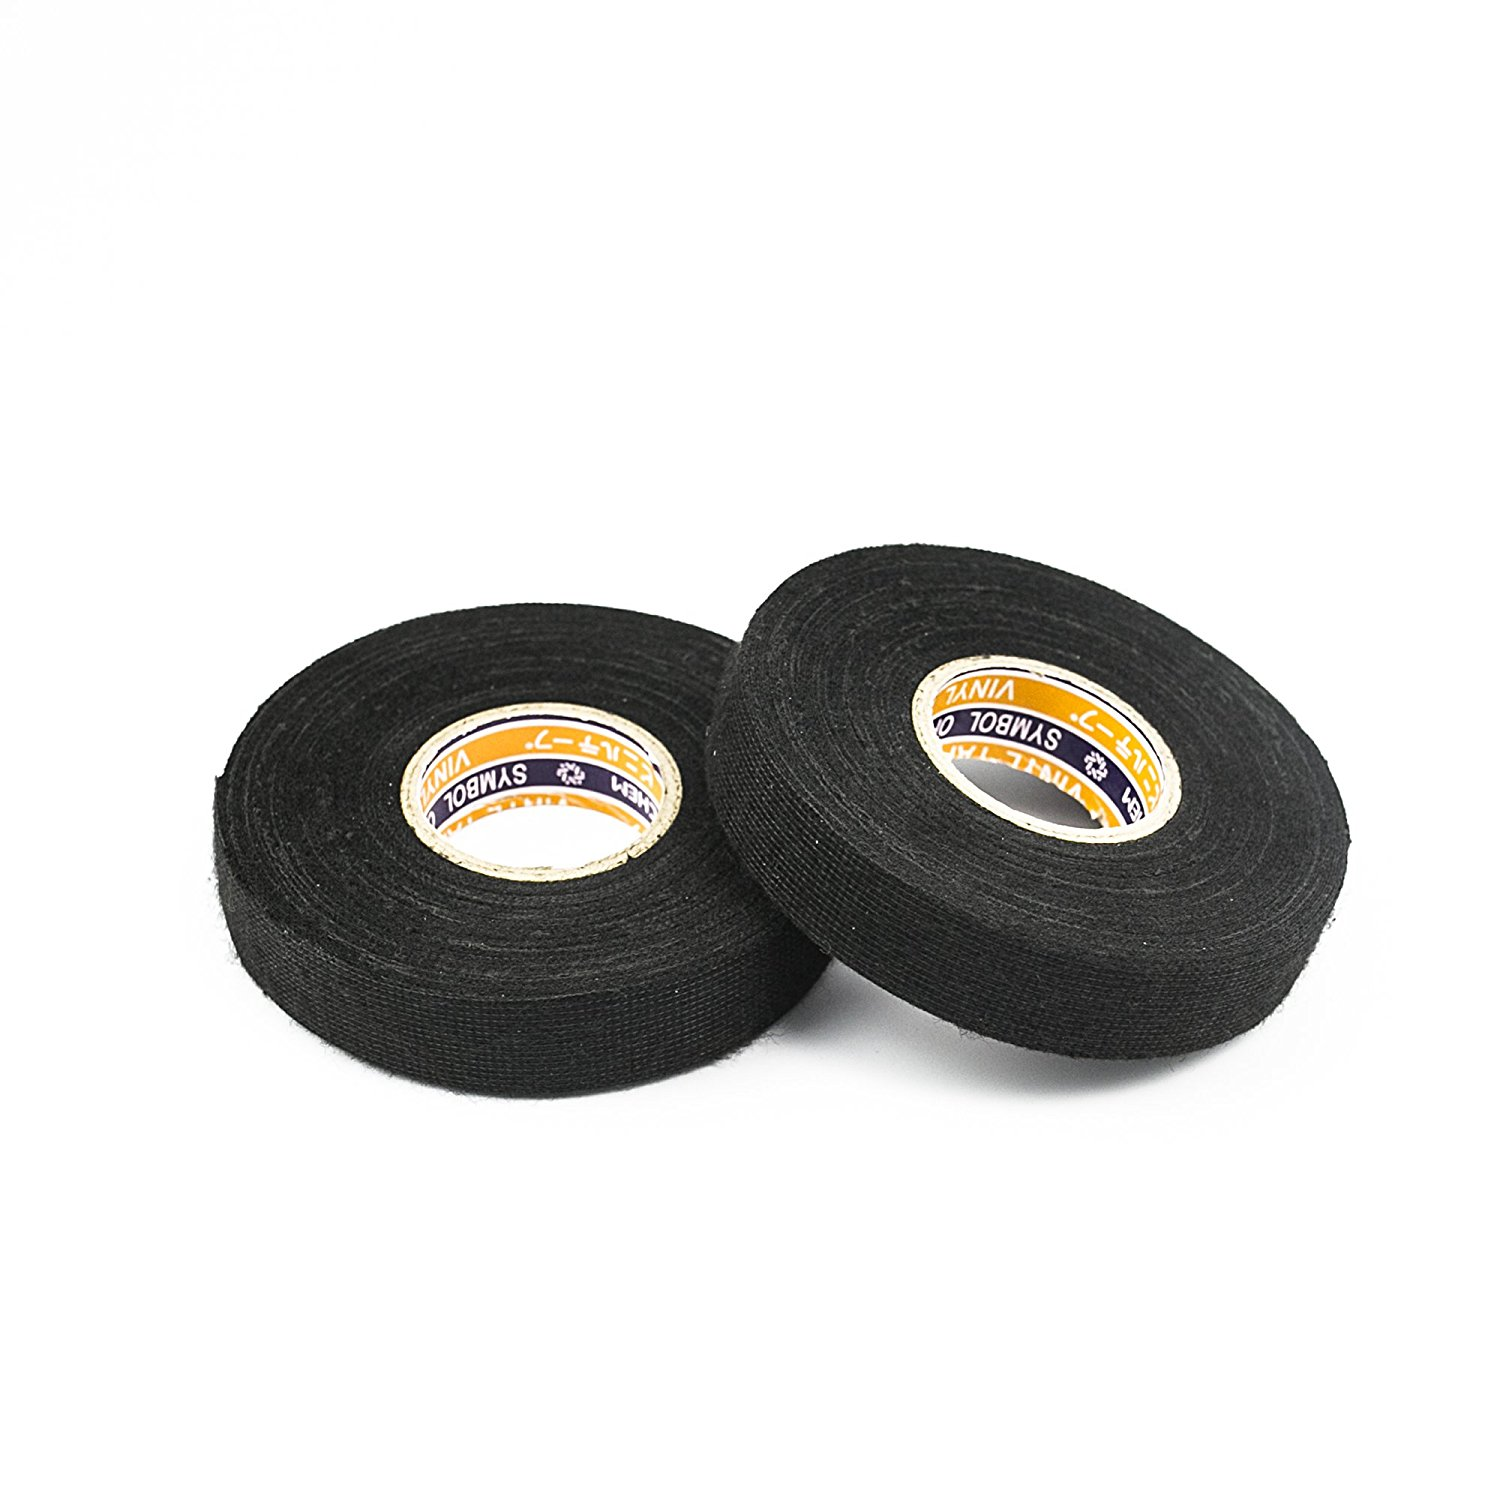 hight resolution of black fuzzy fleece interior wire loom harness tape car wire harness tape for vw audi mercedes bmw 19 mm x 15 metersset of walmart com